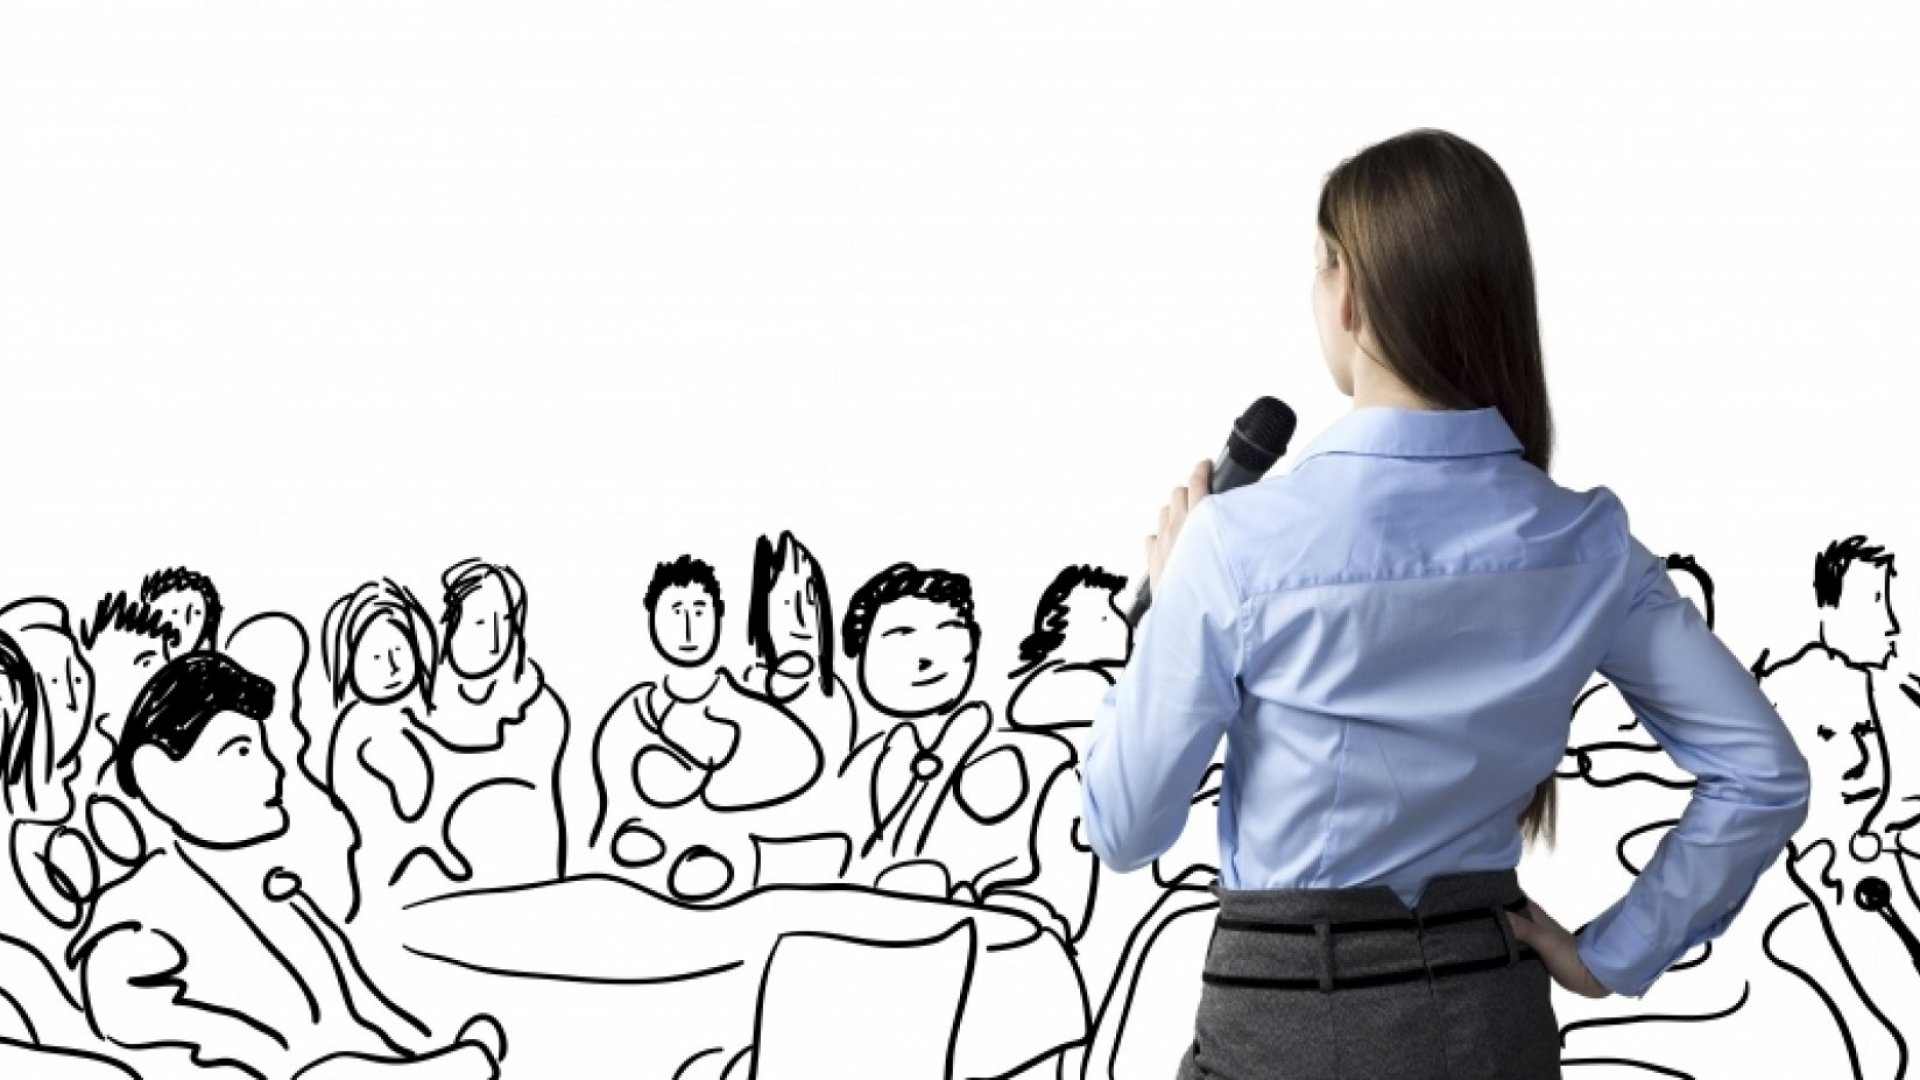 10 Straightforward Tips to Stand Out as a Speaker